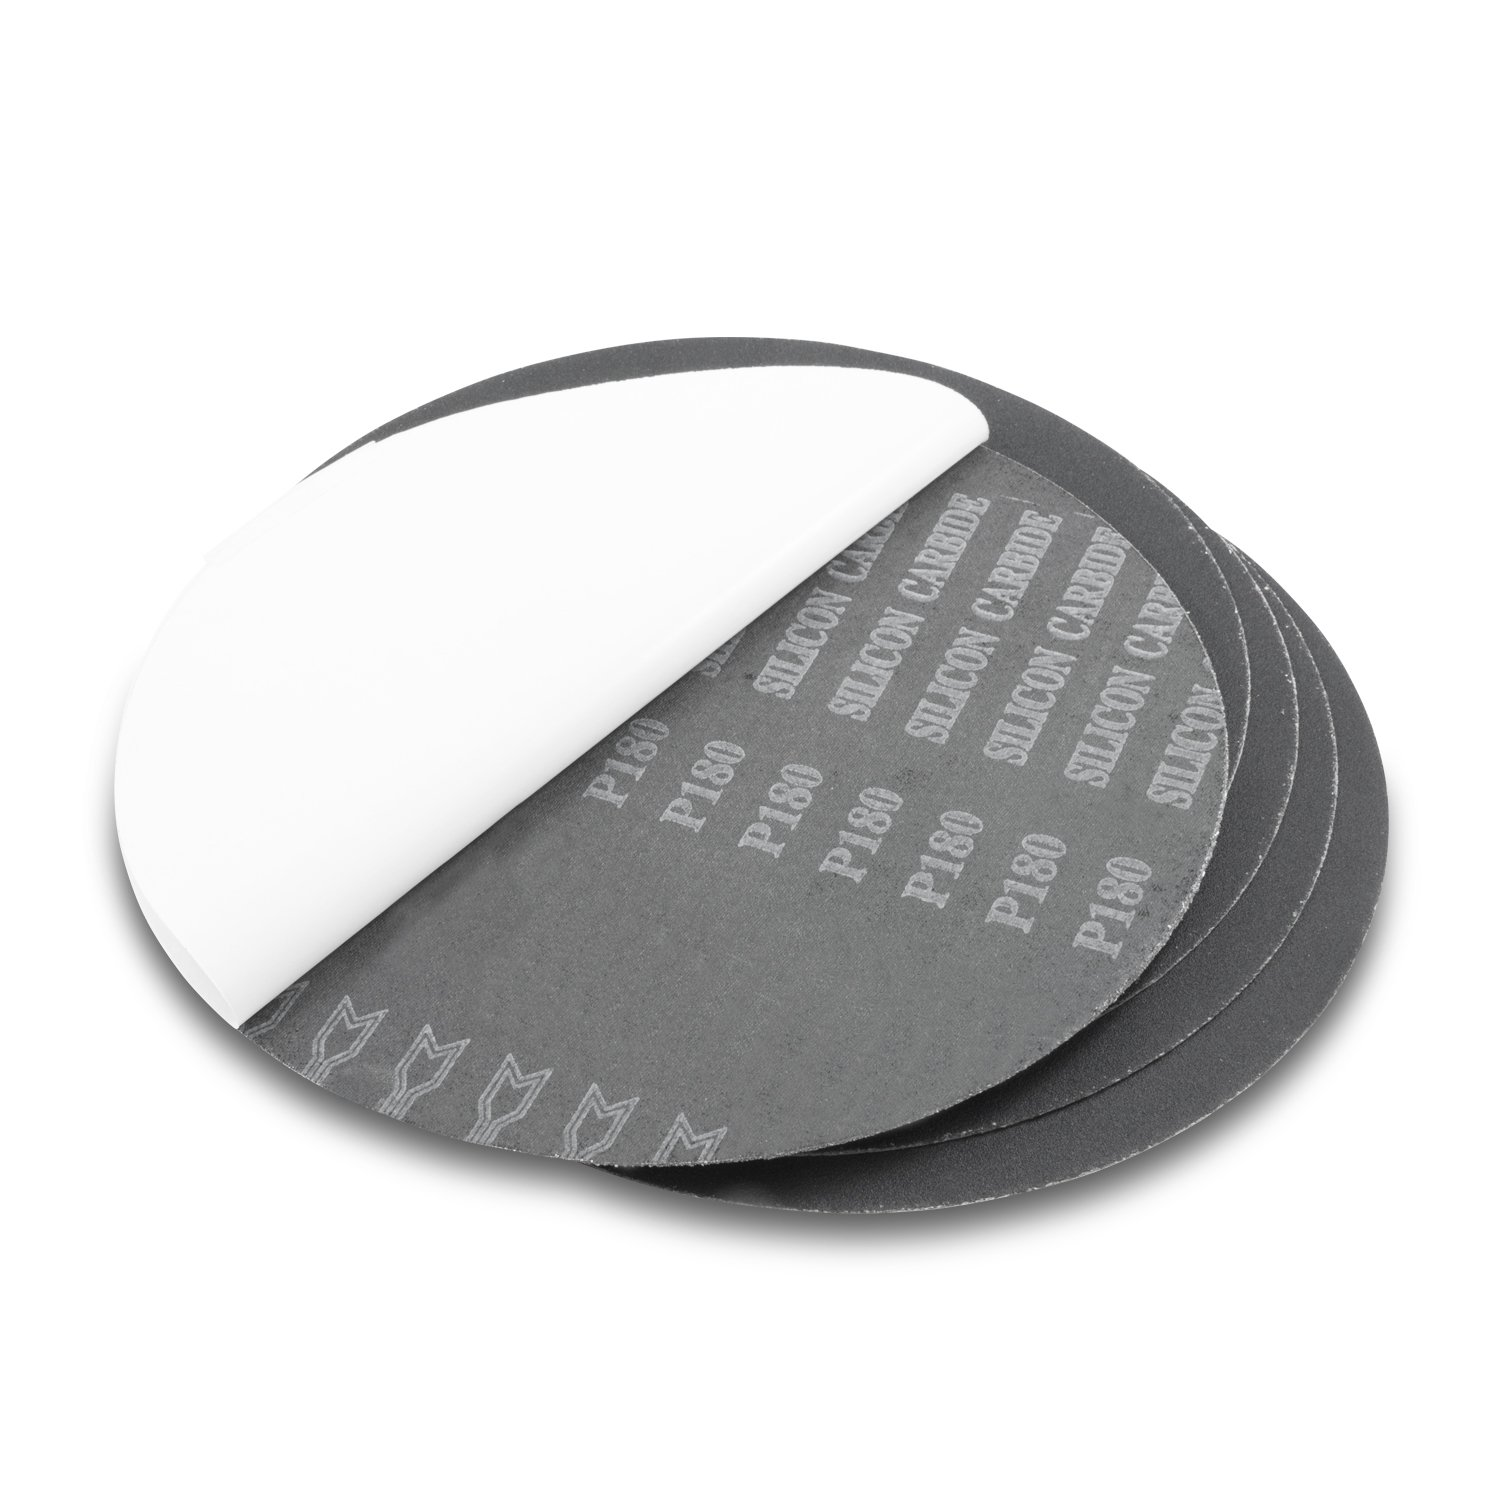 9 Inch 120 Grit Adhesive Back Silicon Carbide Sanding Discs, 5 Pack